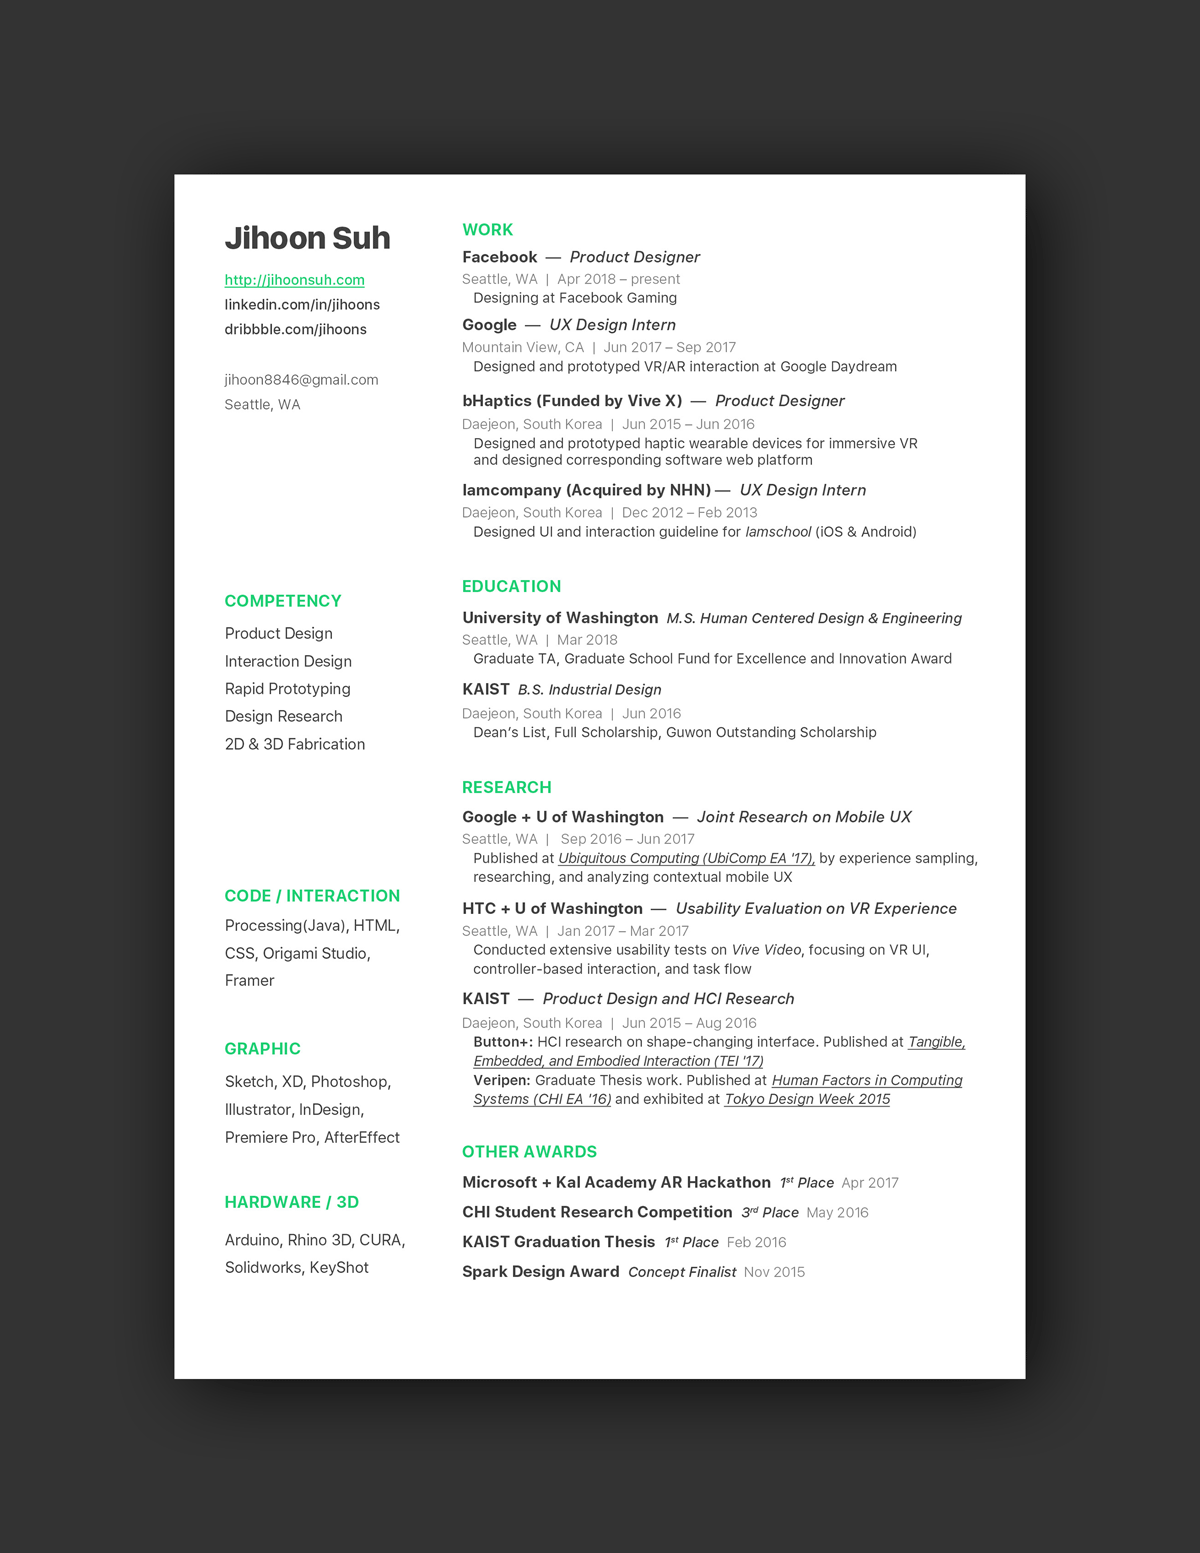 21 Inspiring Ux Designer Resumes And Why They Work Resume Design Resume Design Layout Resume